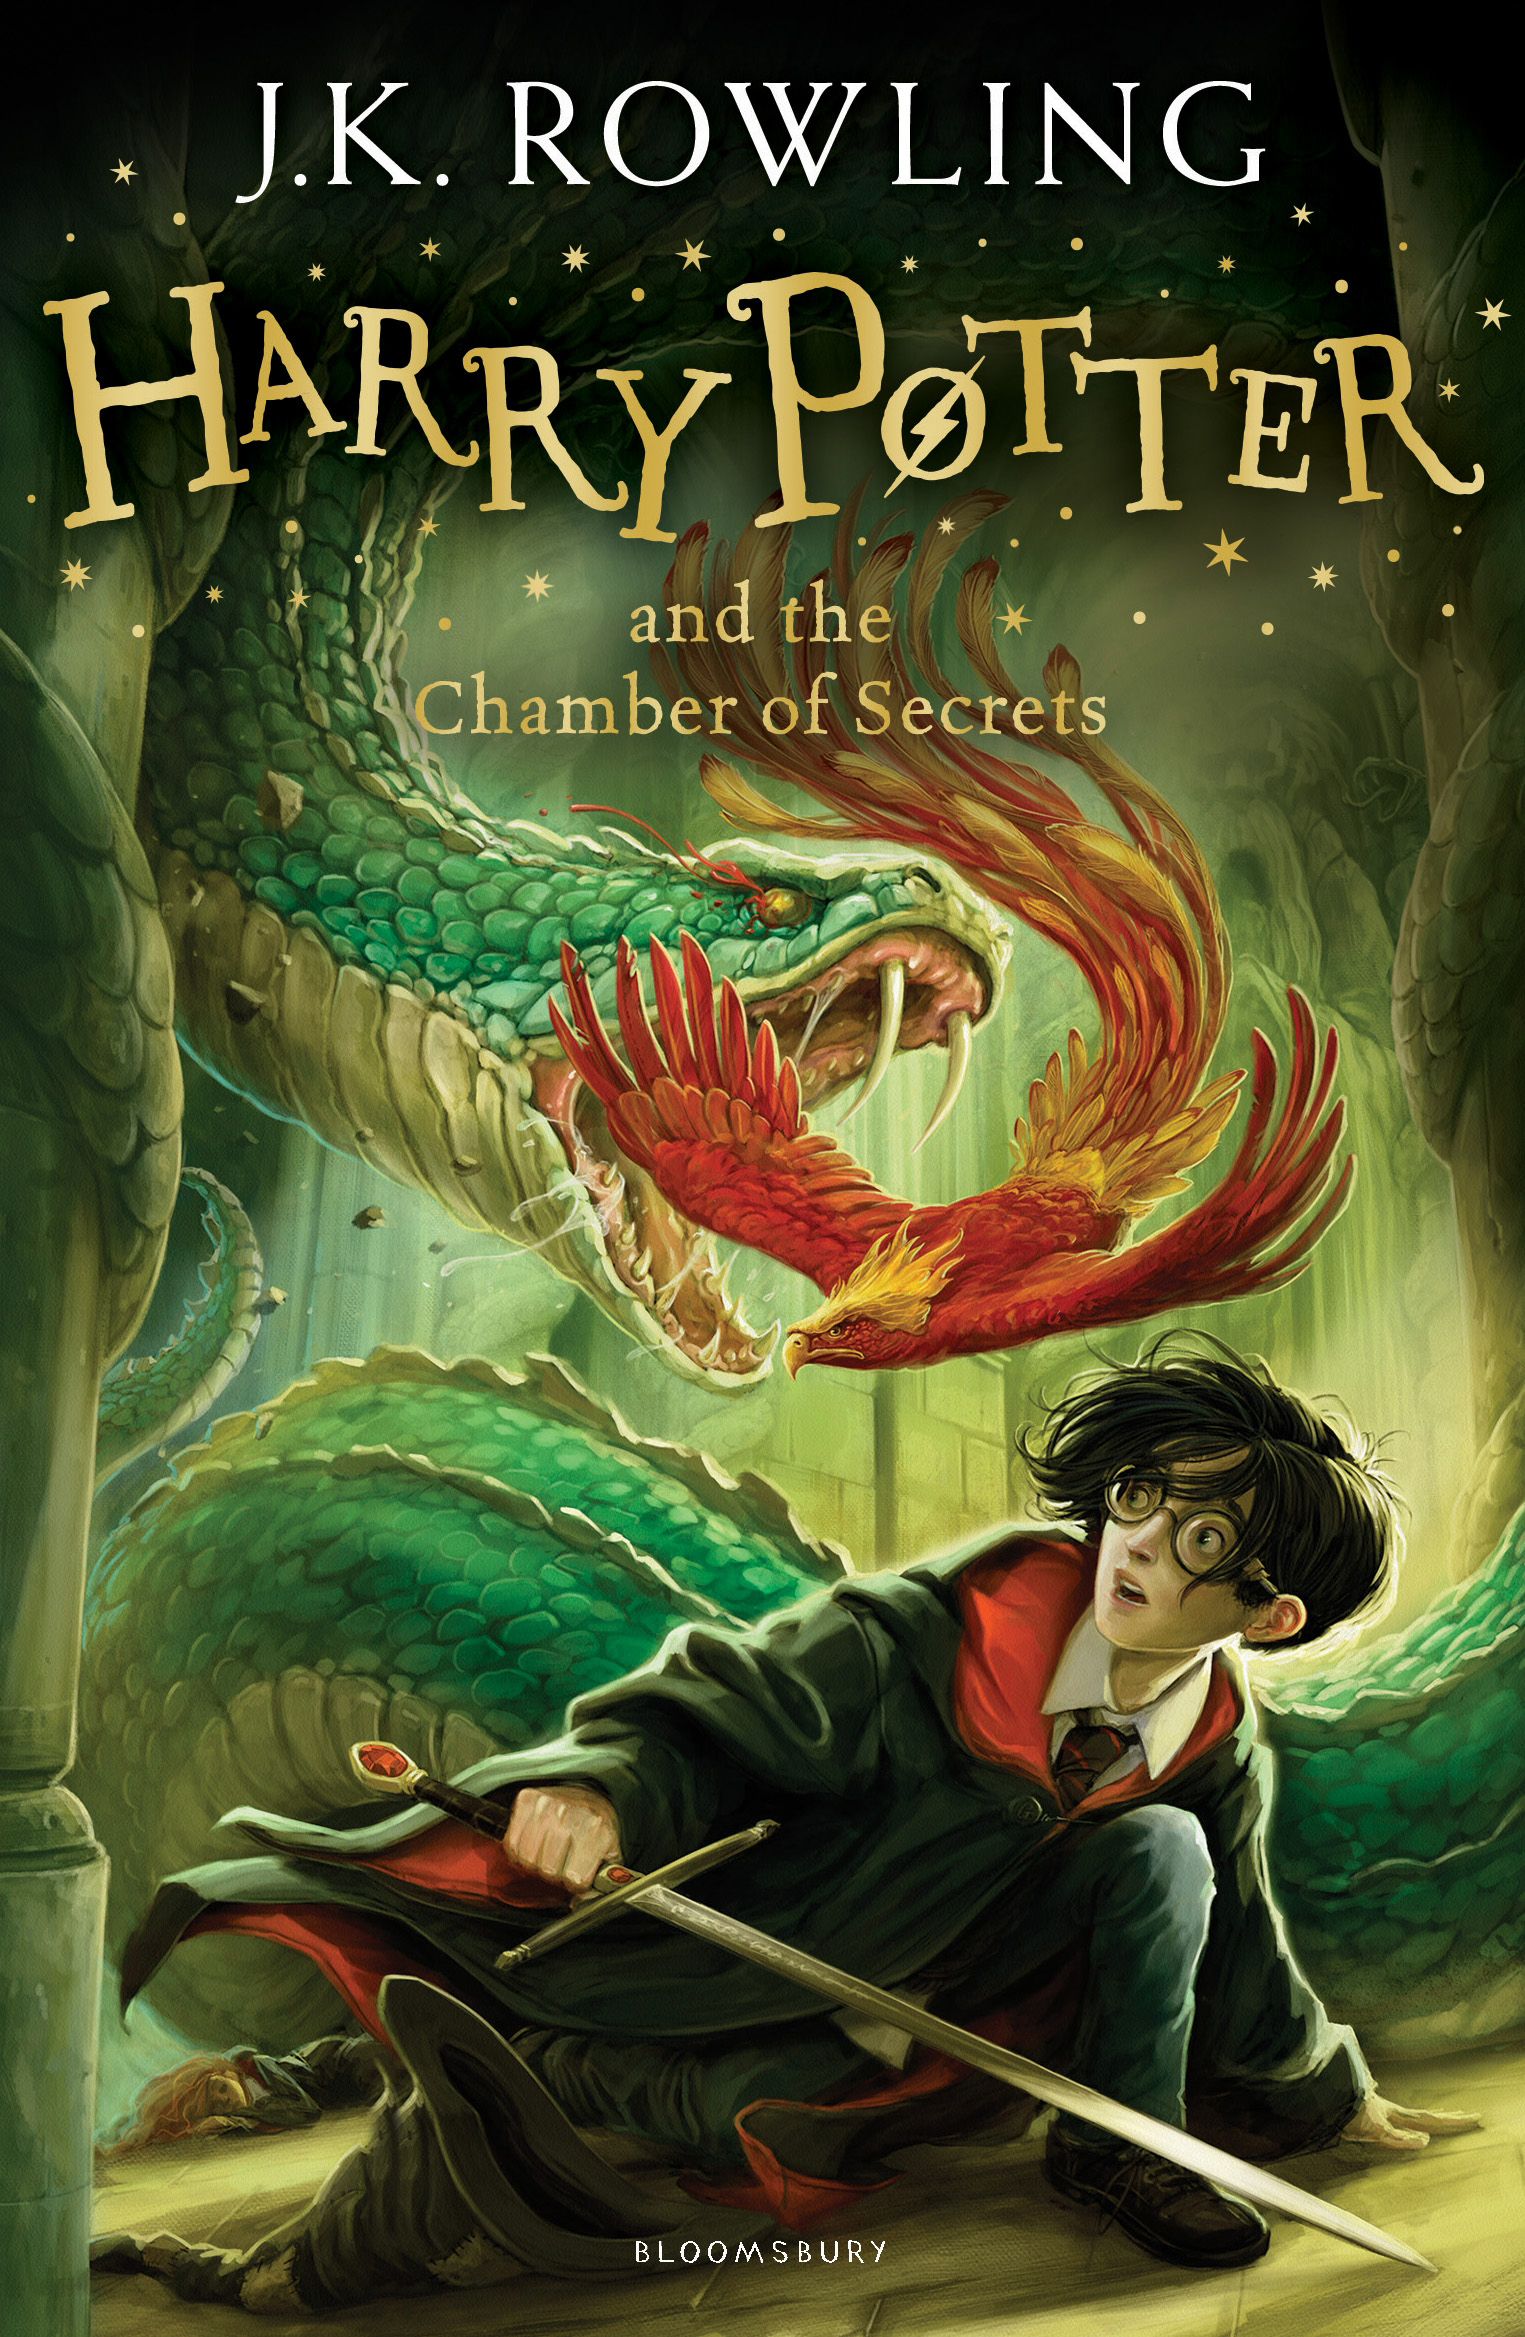 Harry Potter and the Chamber of Secrets by J.K. Rowling, ISBN: 9781408855904